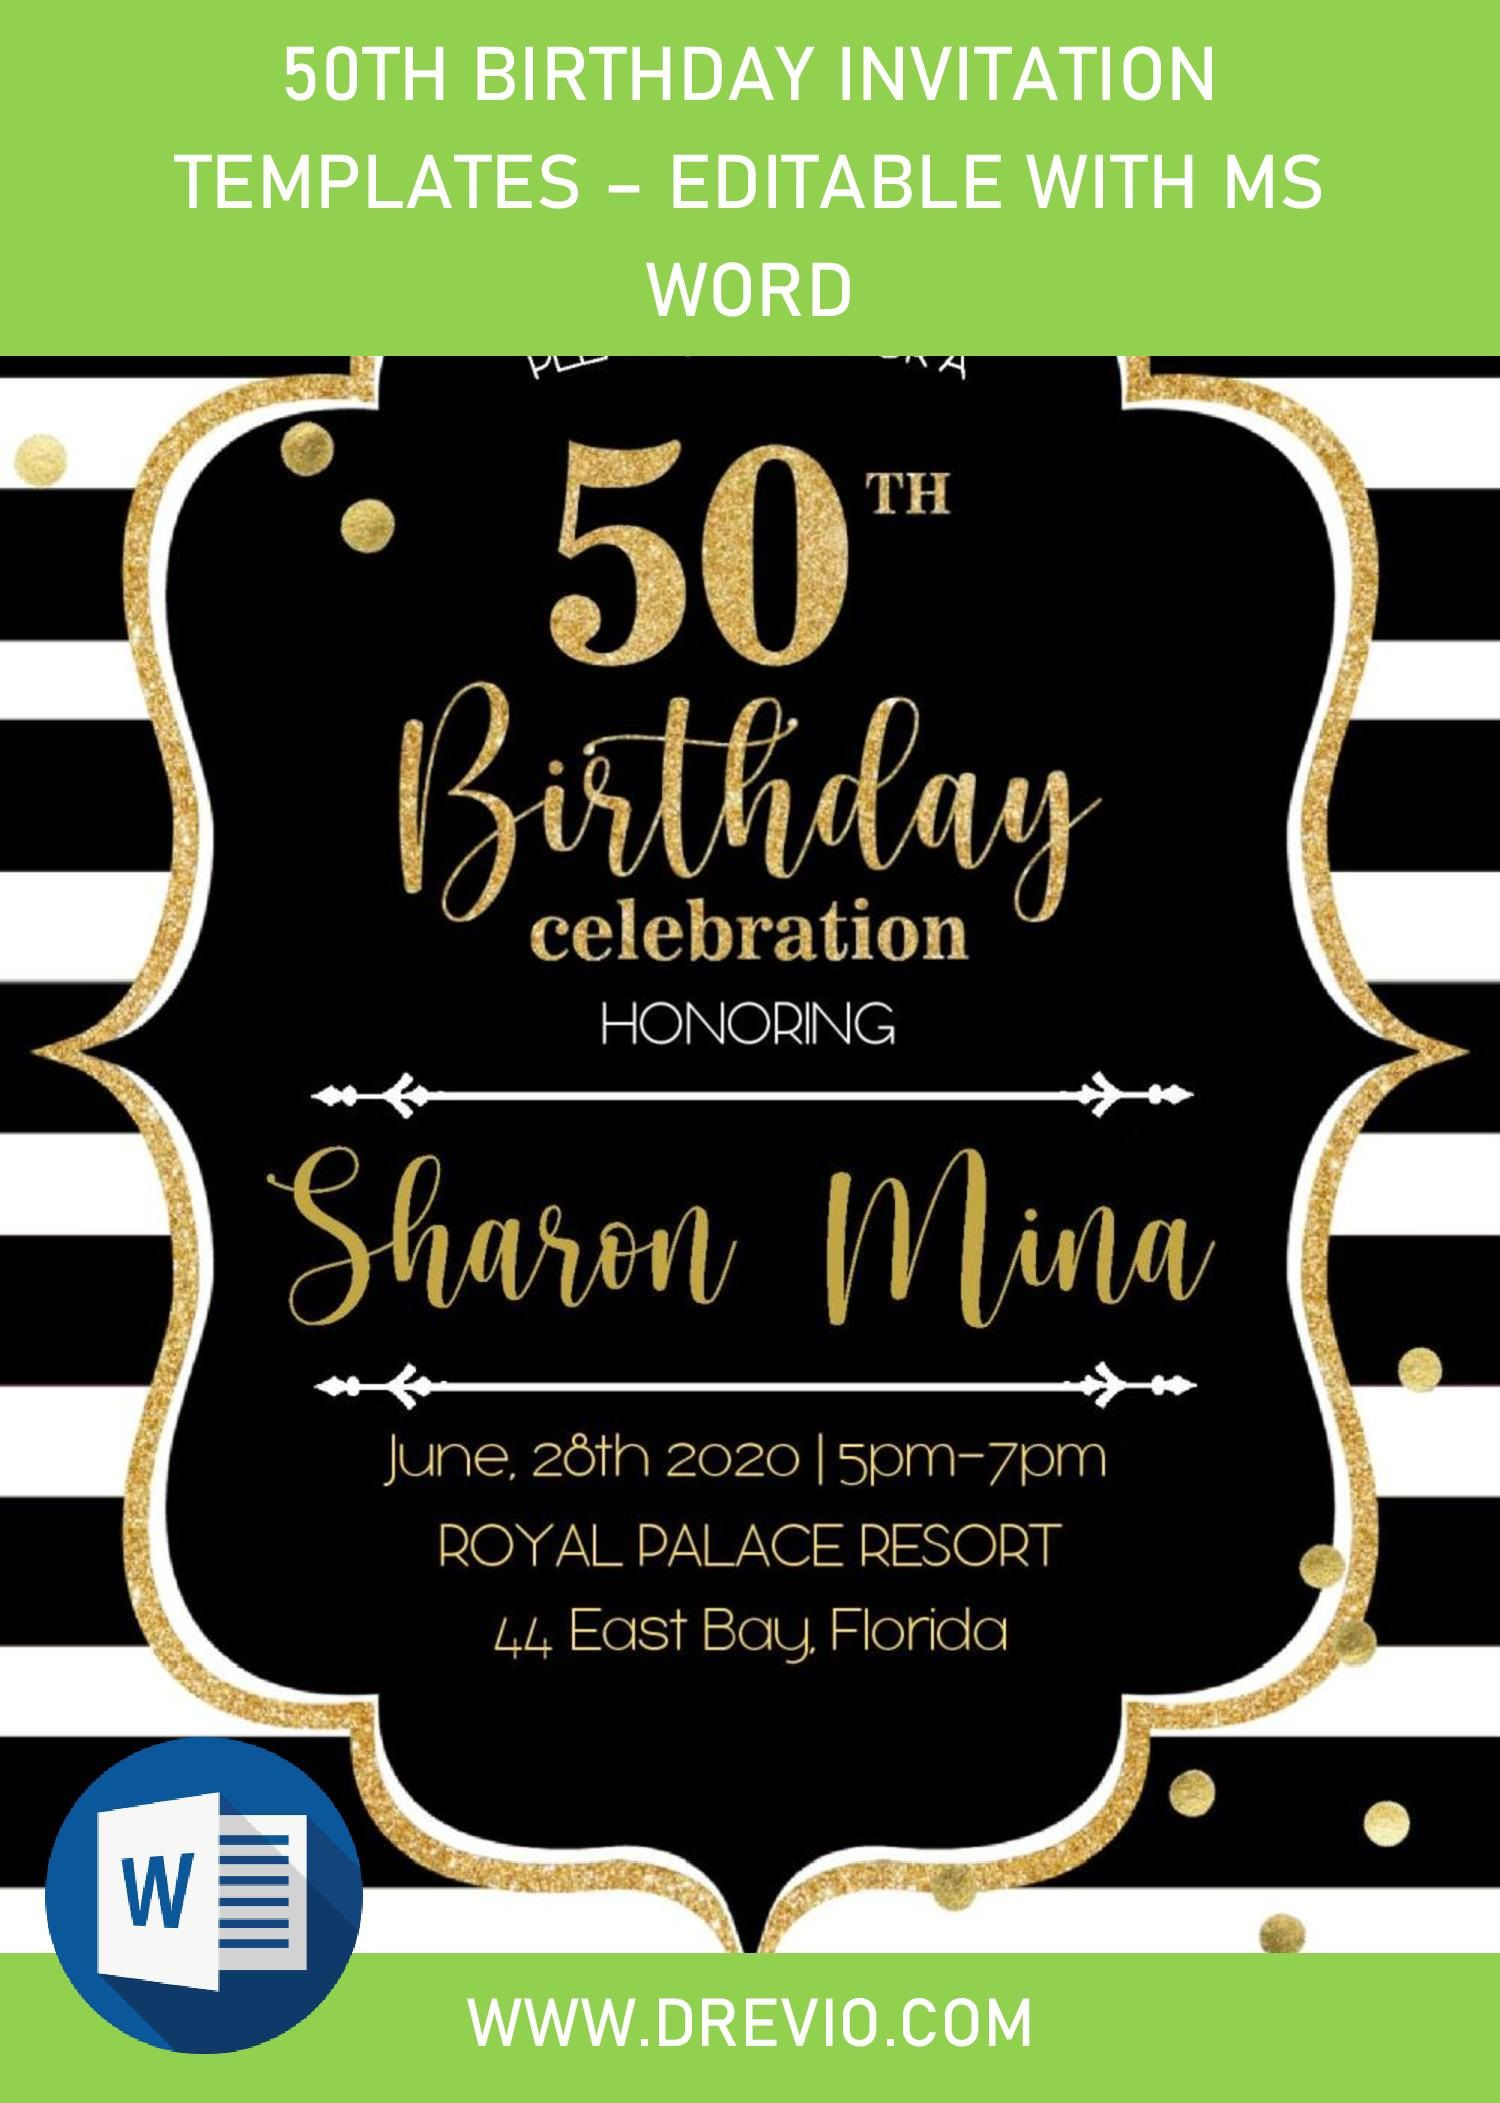 003 Incredible Birthday Invitation Template Word 2020 Highest Clarity Full